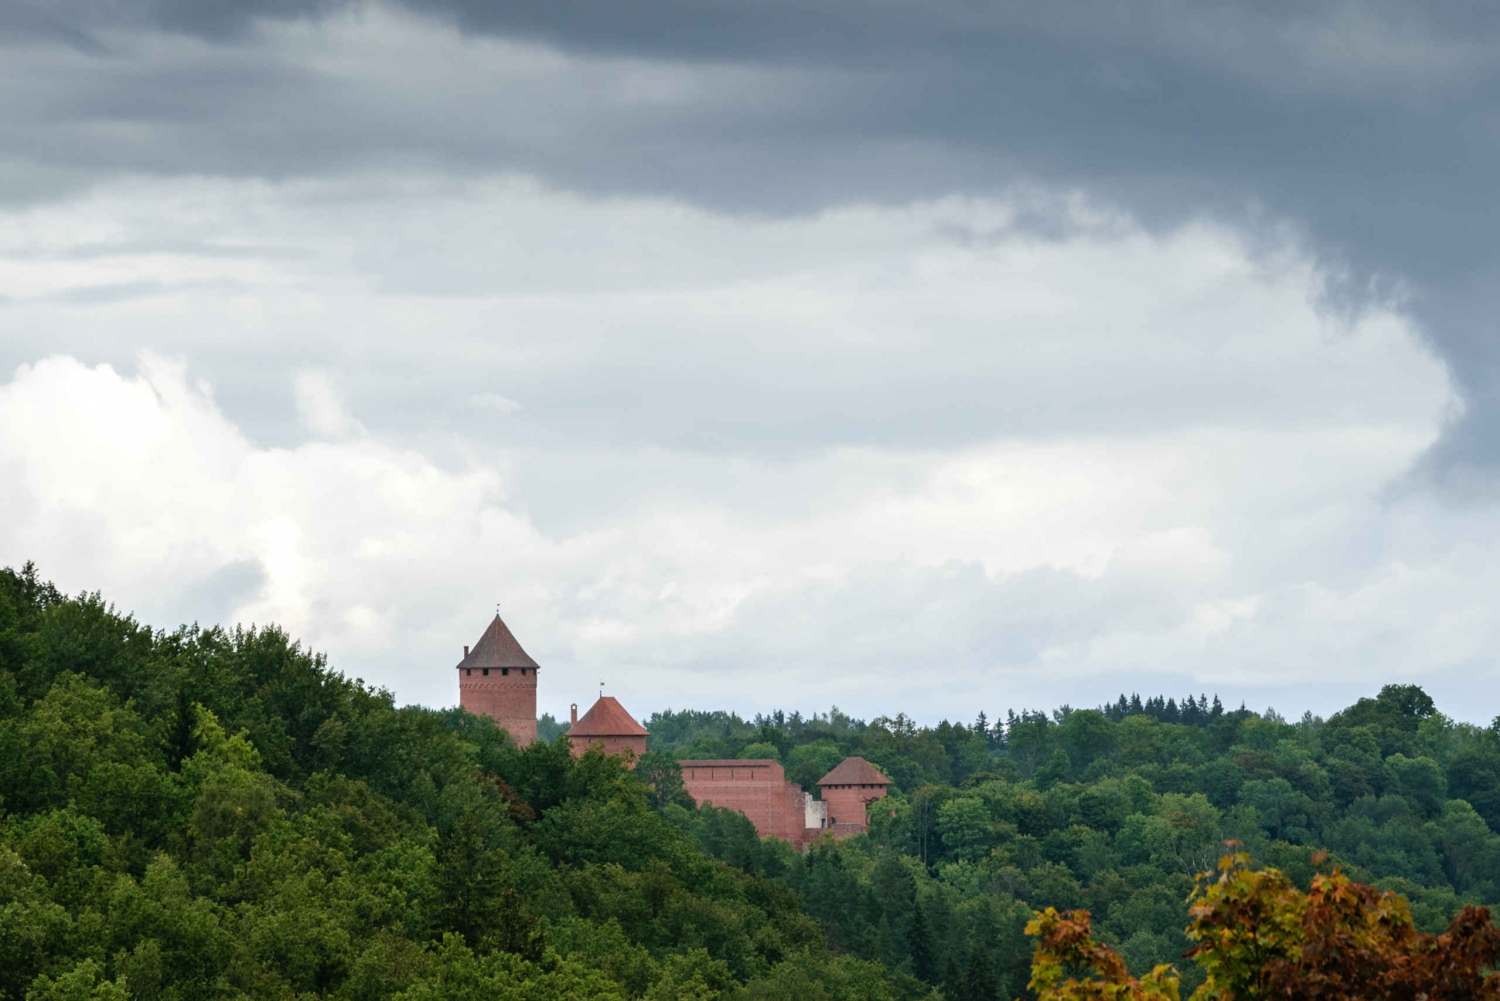 Sigulda Day Tour - Castle Ruins, Gūtmaņala Grotto, & More